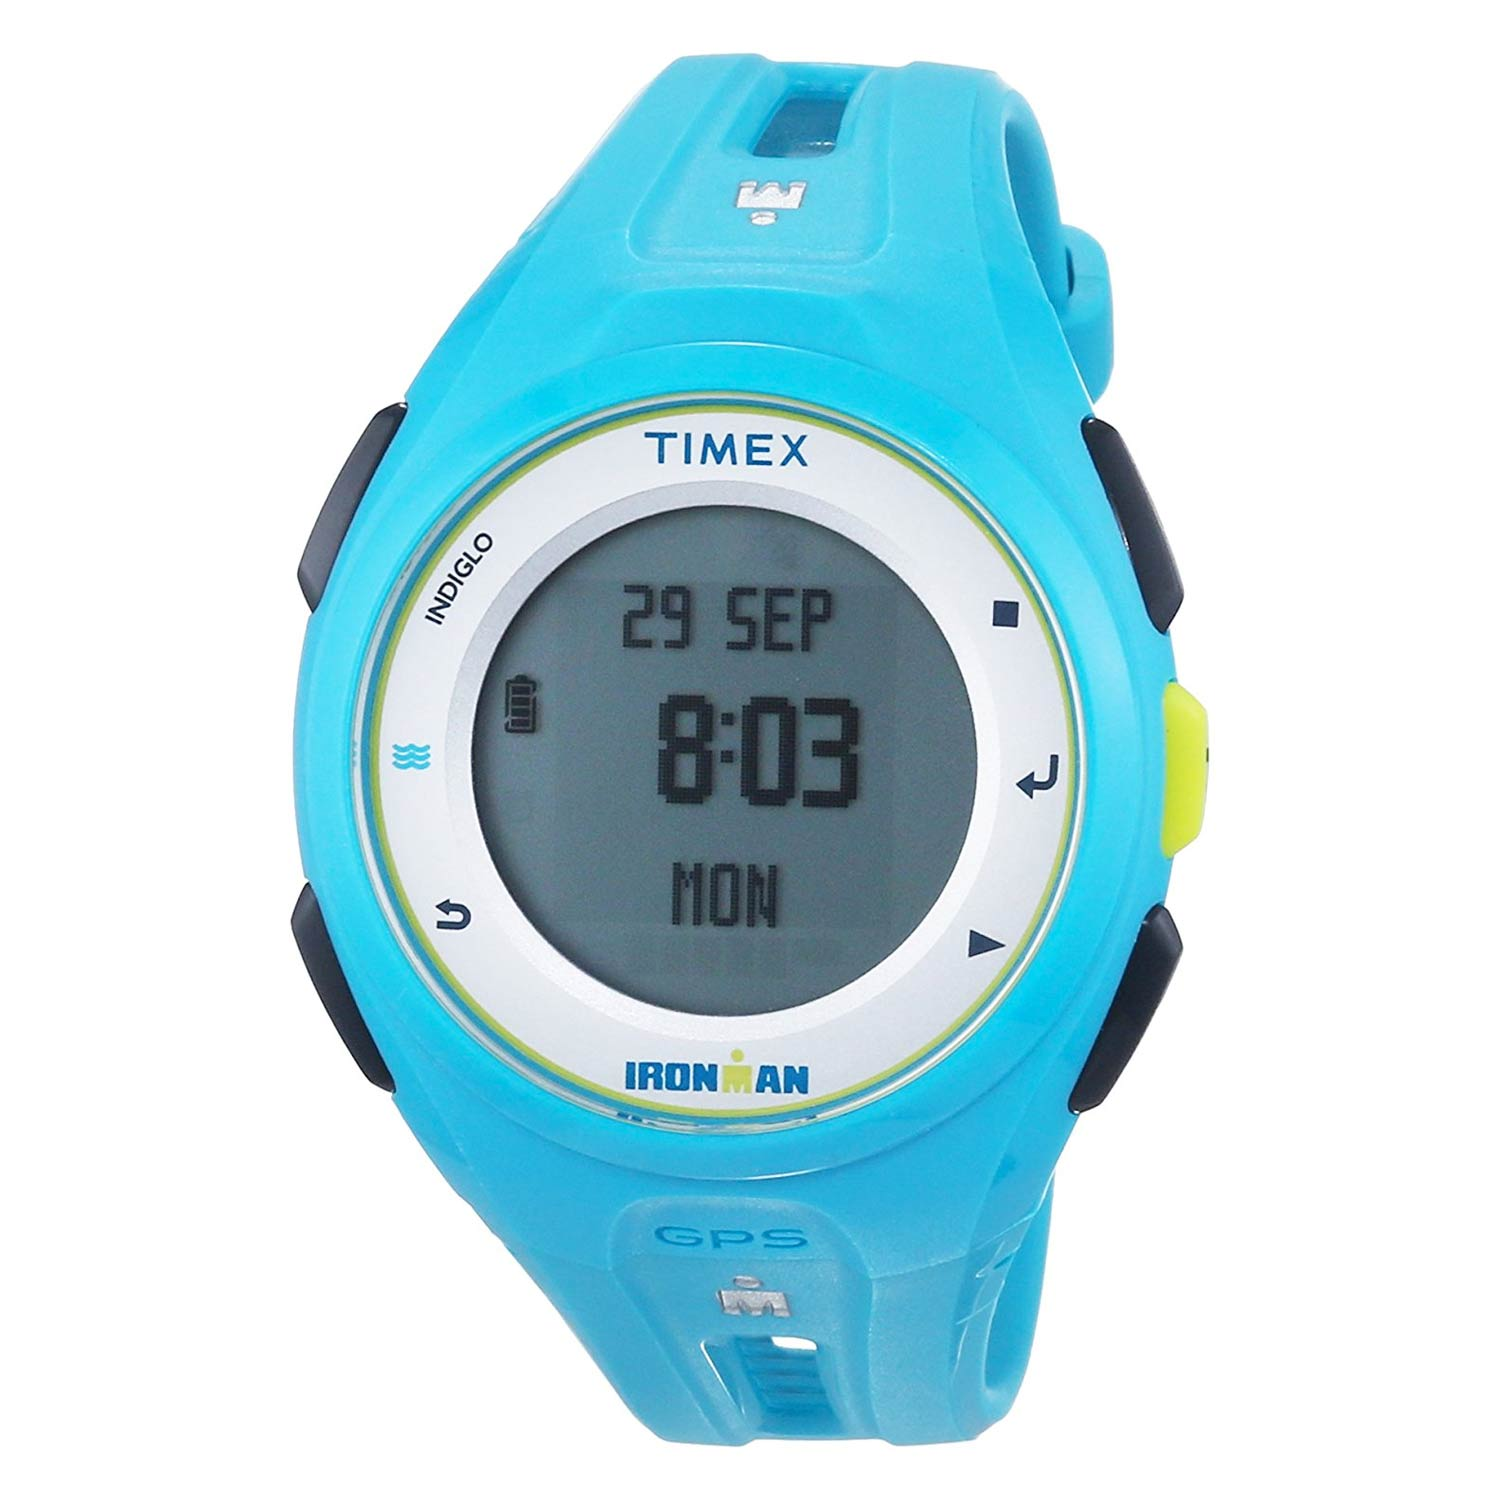 timex ironman x20 sportuhr leichte marathon uhr mit gps. Black Bedroom Furniture Sets. Home Design Ideas